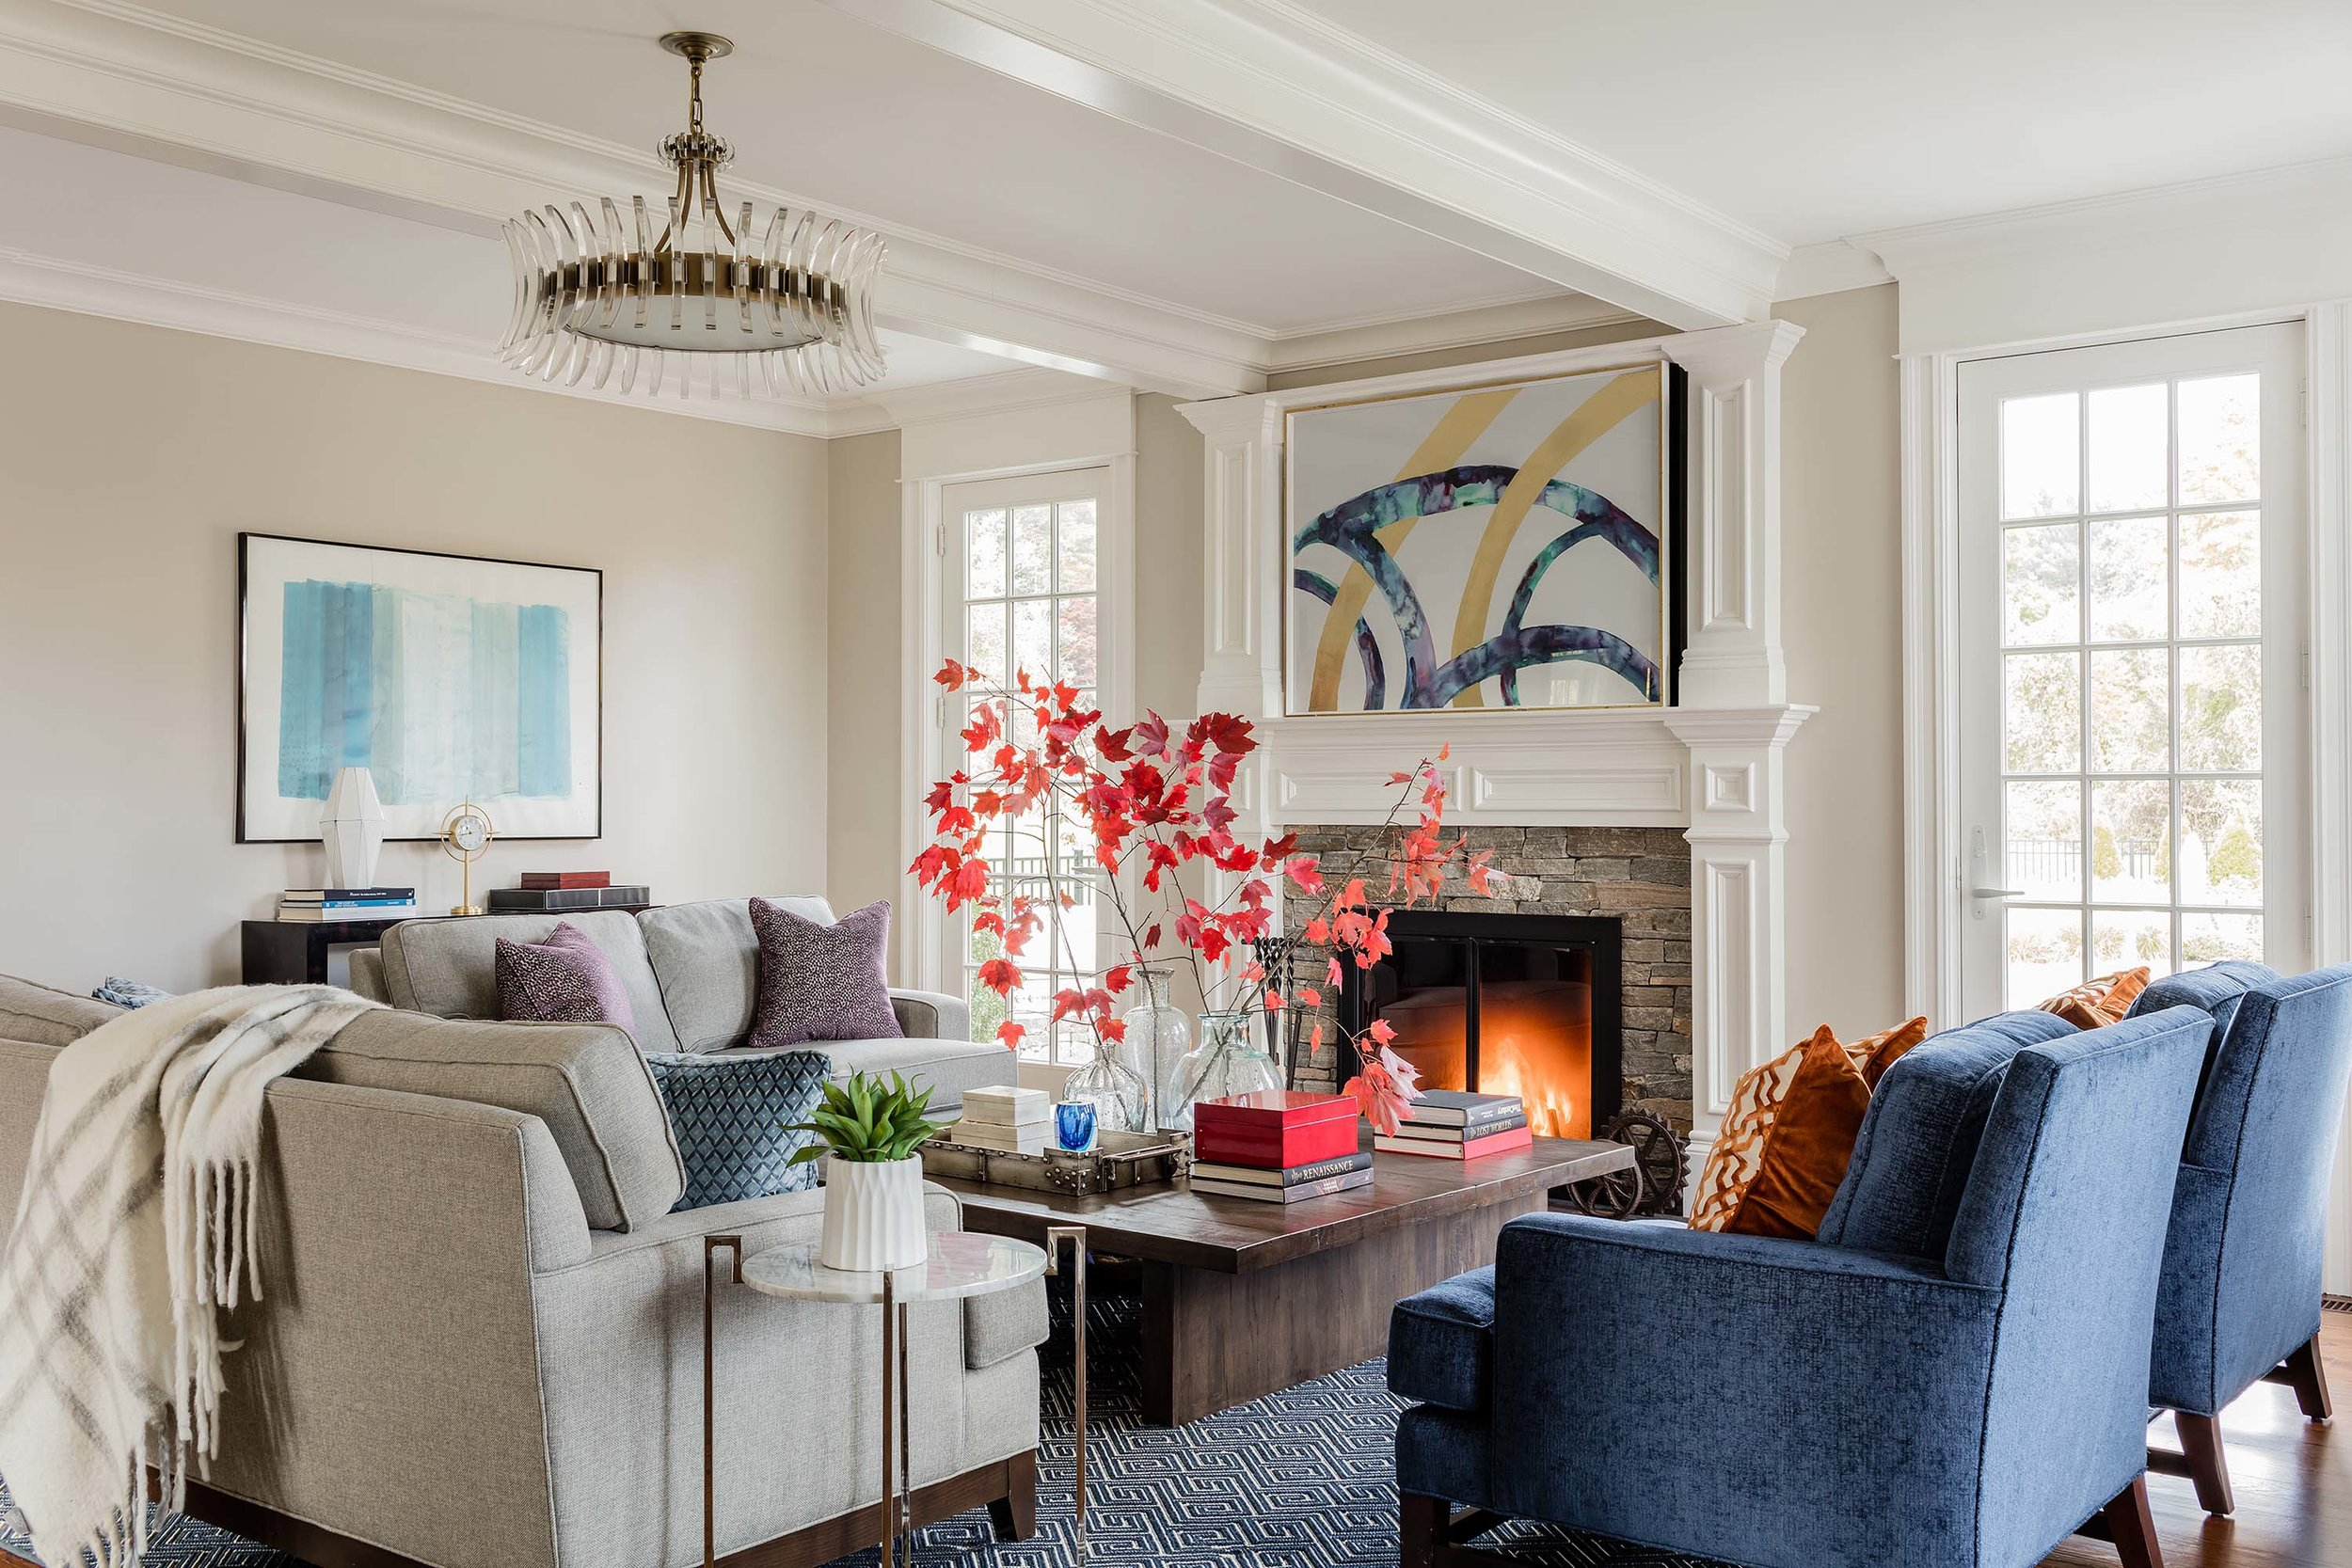 Living room with sofa, armchairs, fireplace, wooden center table, and artwork on the wall, rh, restoration hardware, verranzano bookcase, wood bookcase, kravet, pelham chair, currey and co, currey, coquette chandelier, katie.gallery artwork, katie.gallery